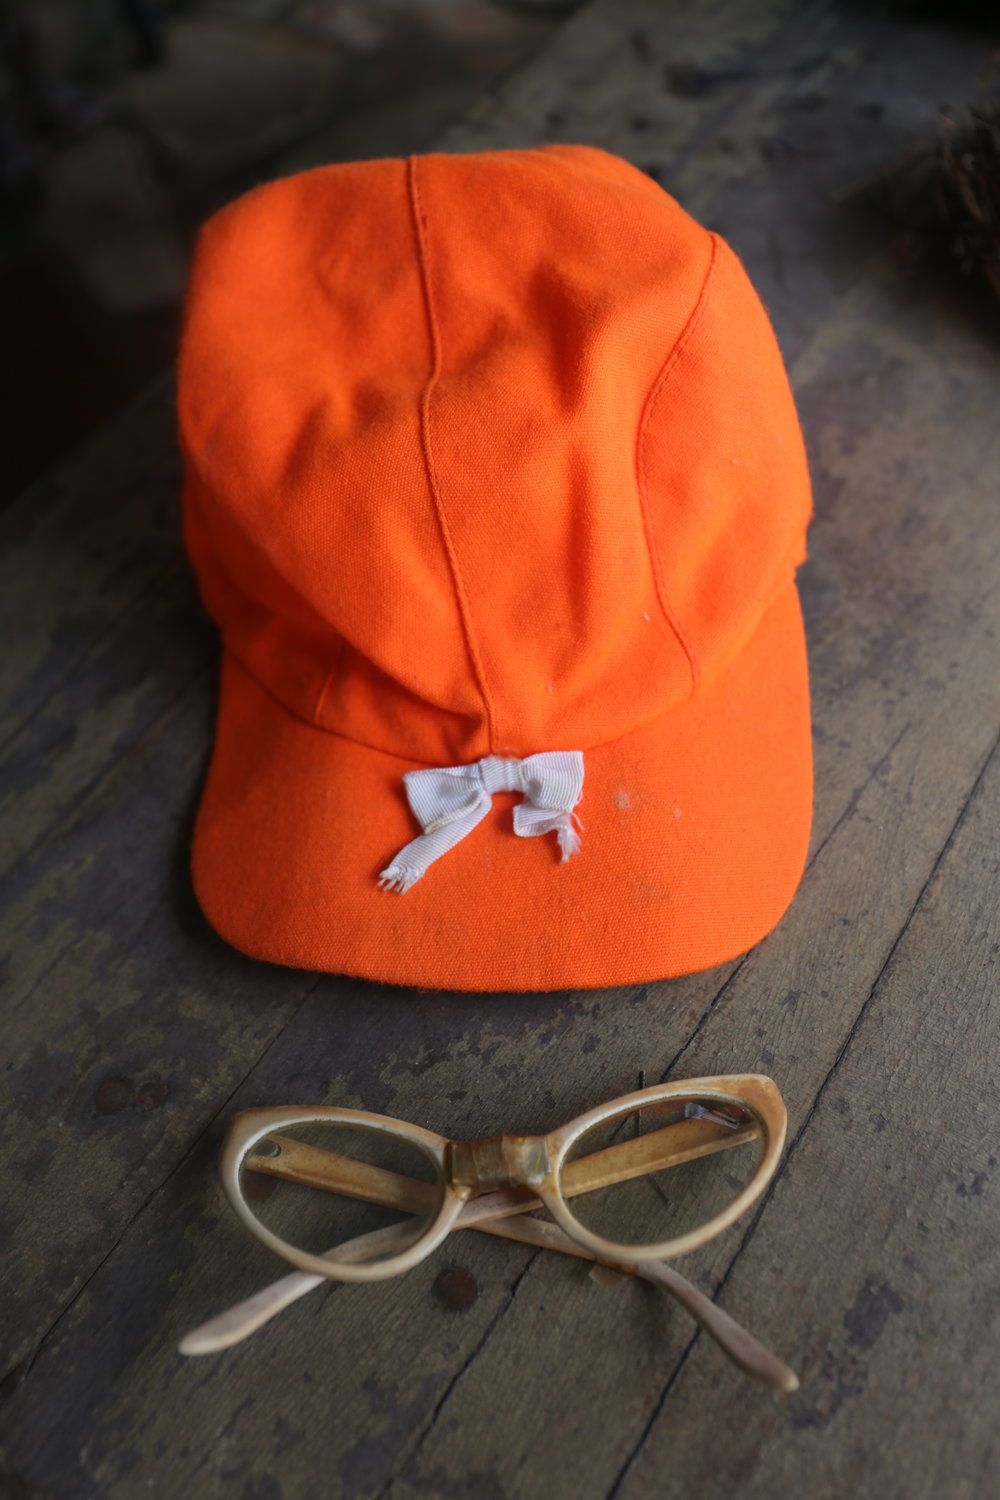 Kay's hunting cap and iconic cat eye glasses.